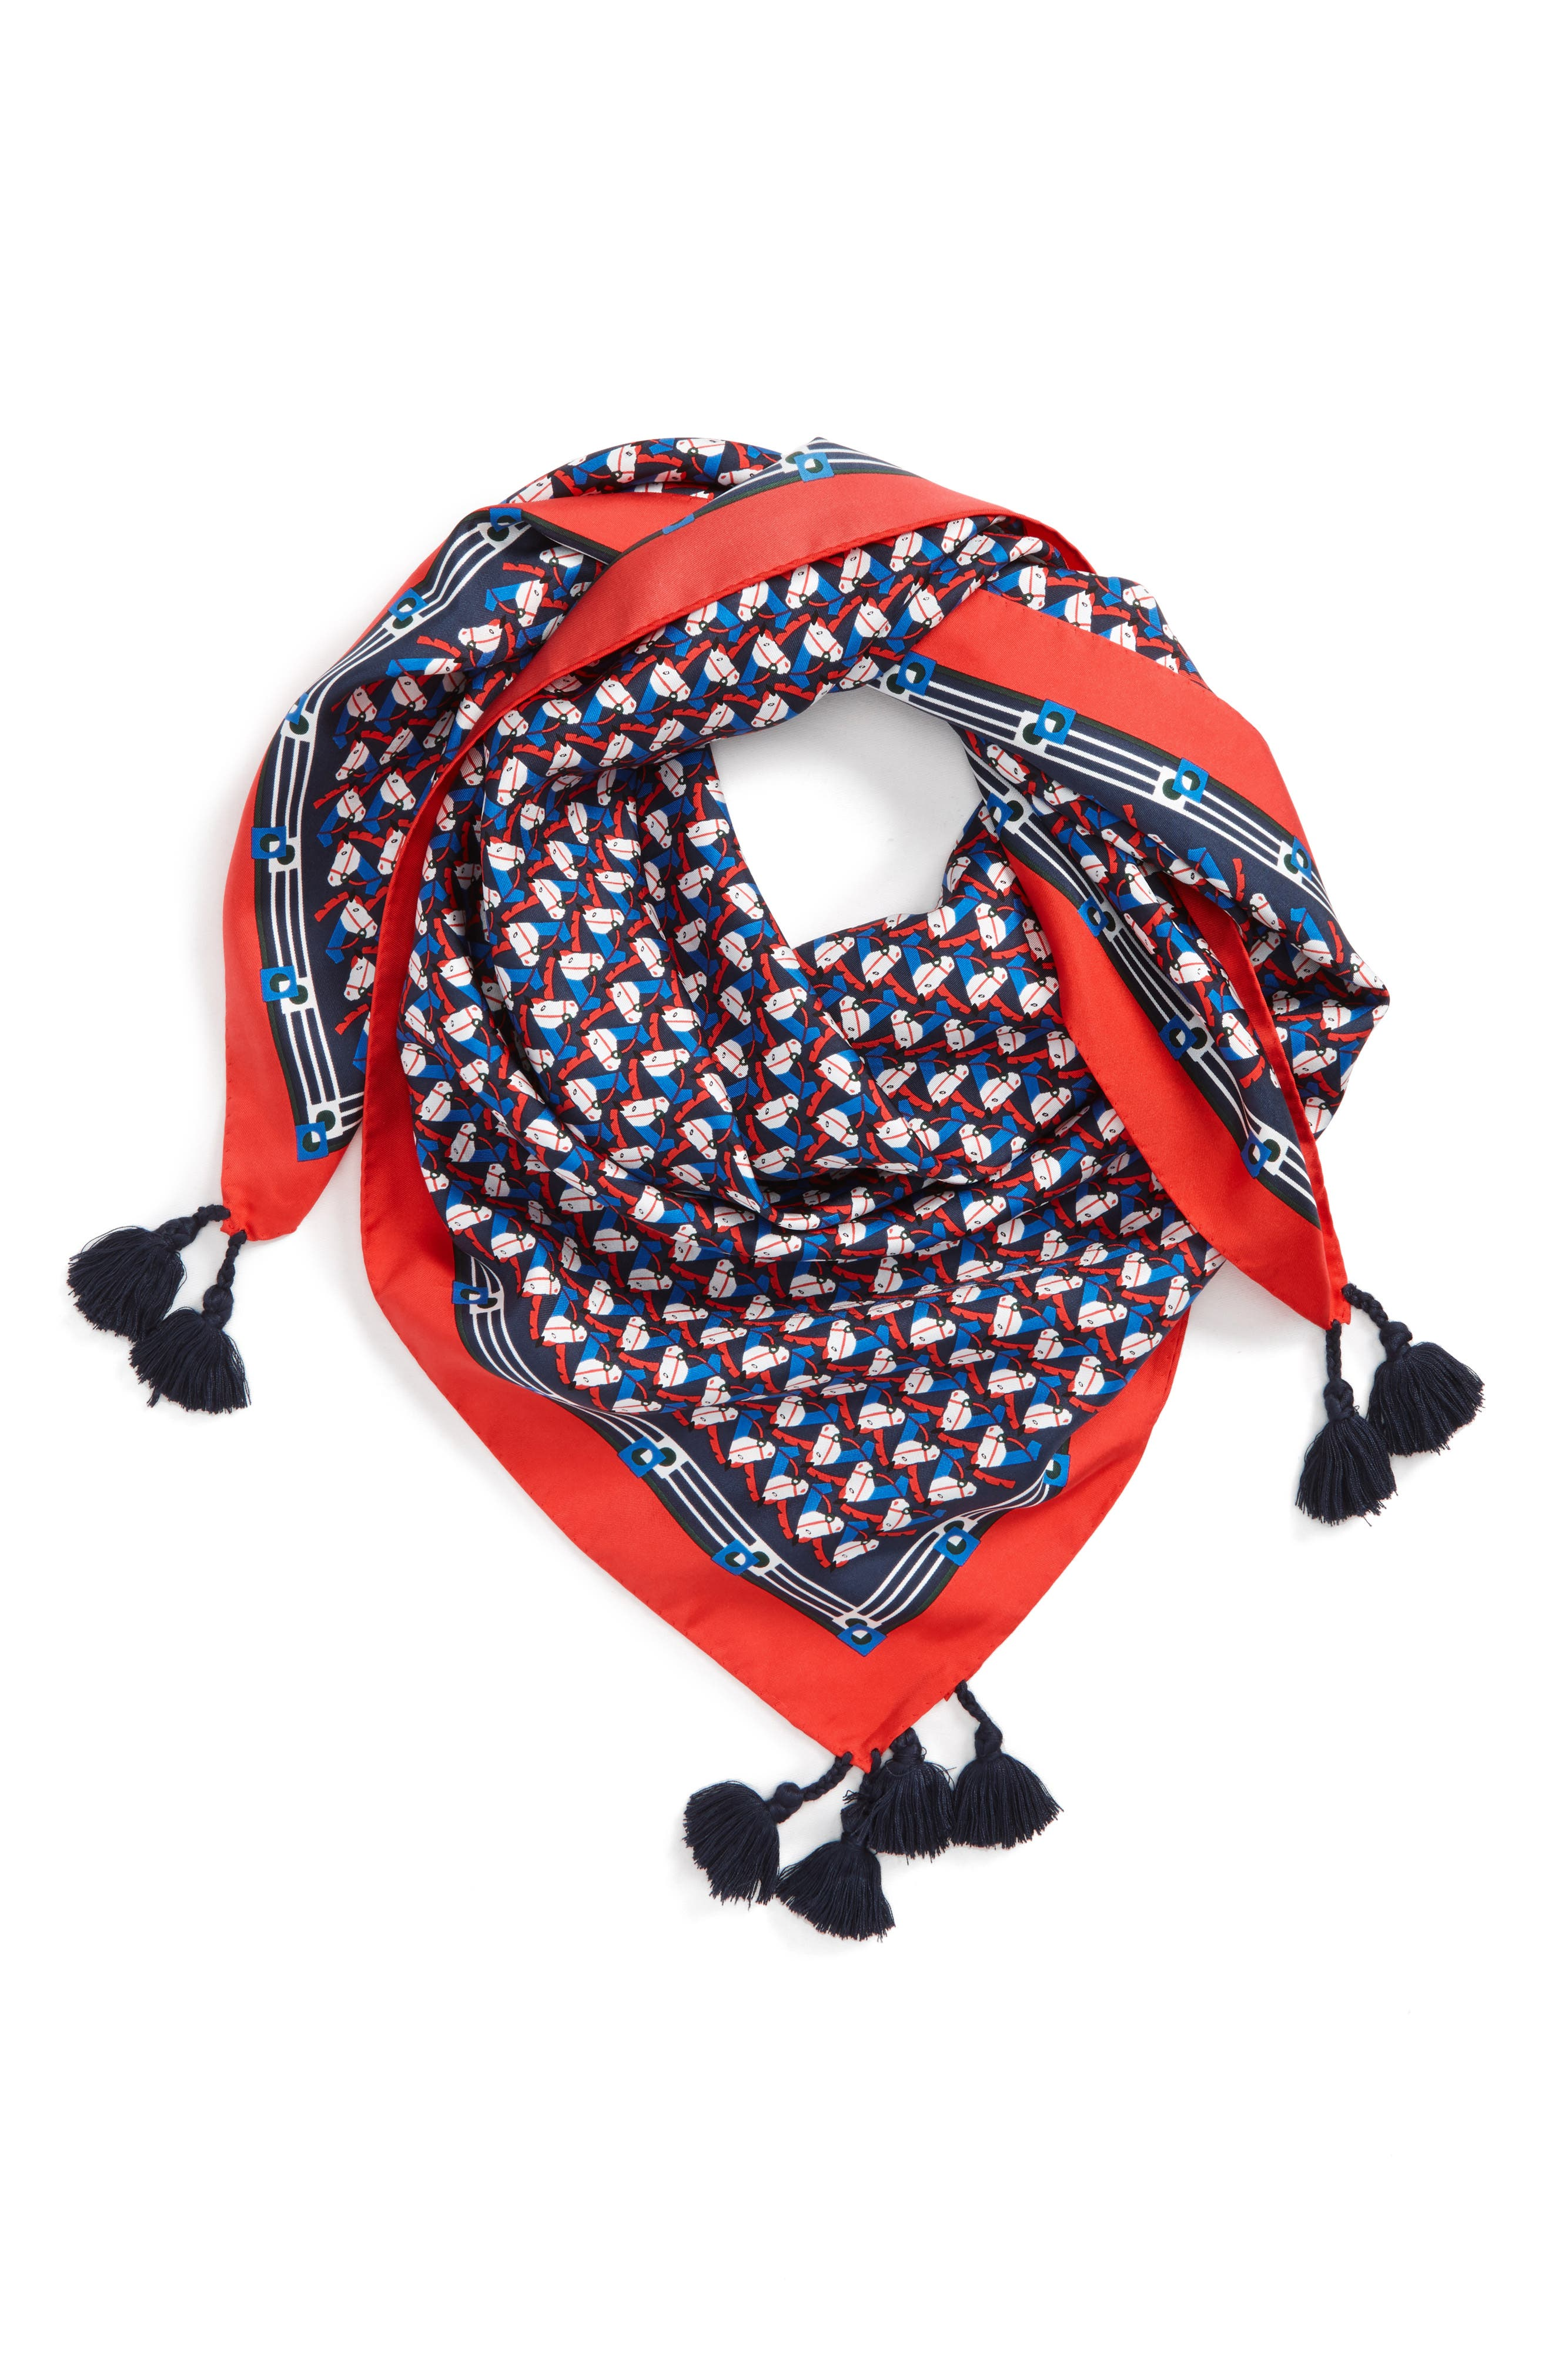 Stallion Silk Square Scarf with Tassels,                         Main,                         color, 400